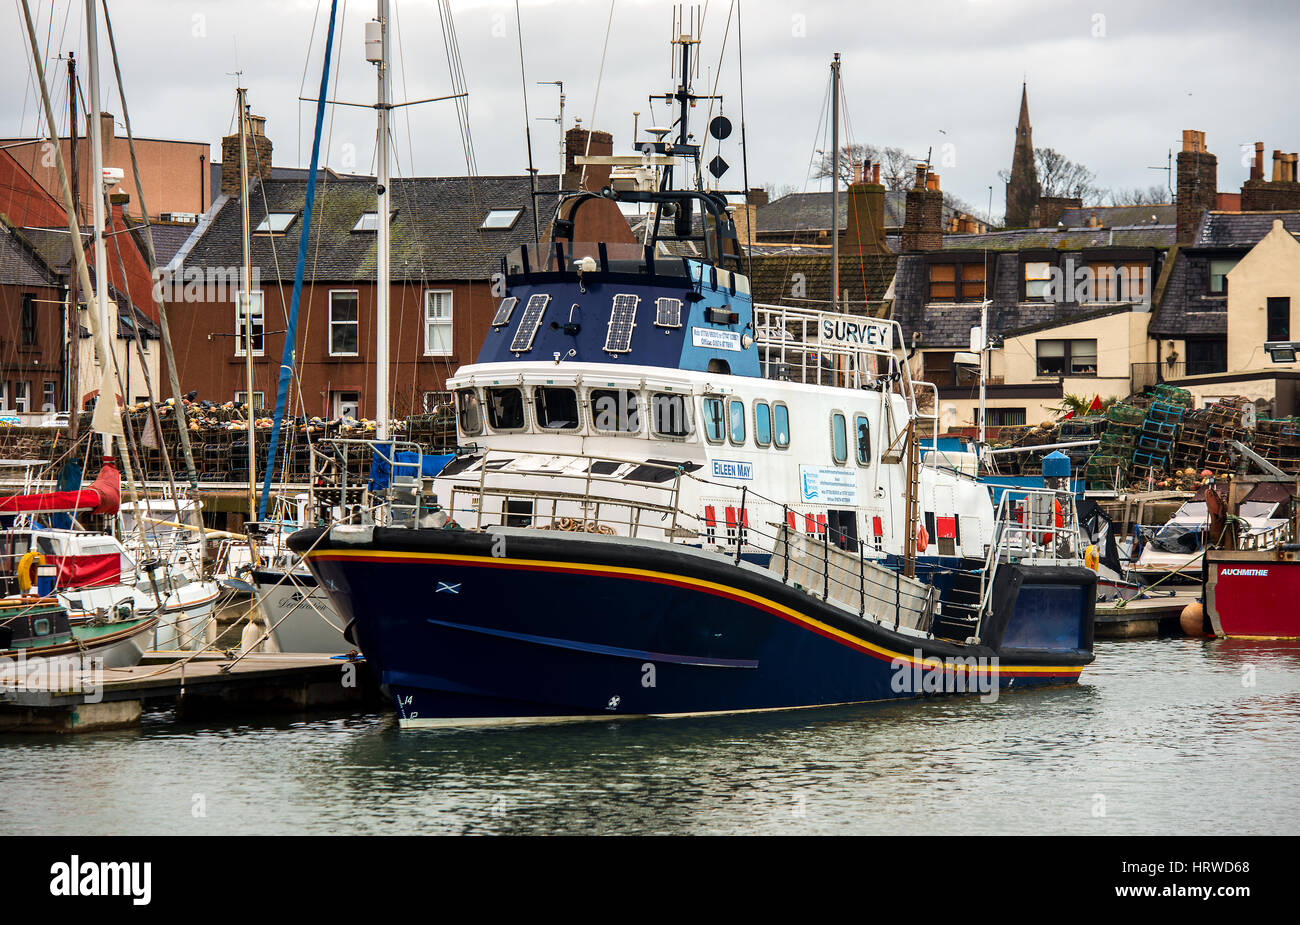 Survey Ship Arbroath Harbour - Stock Image